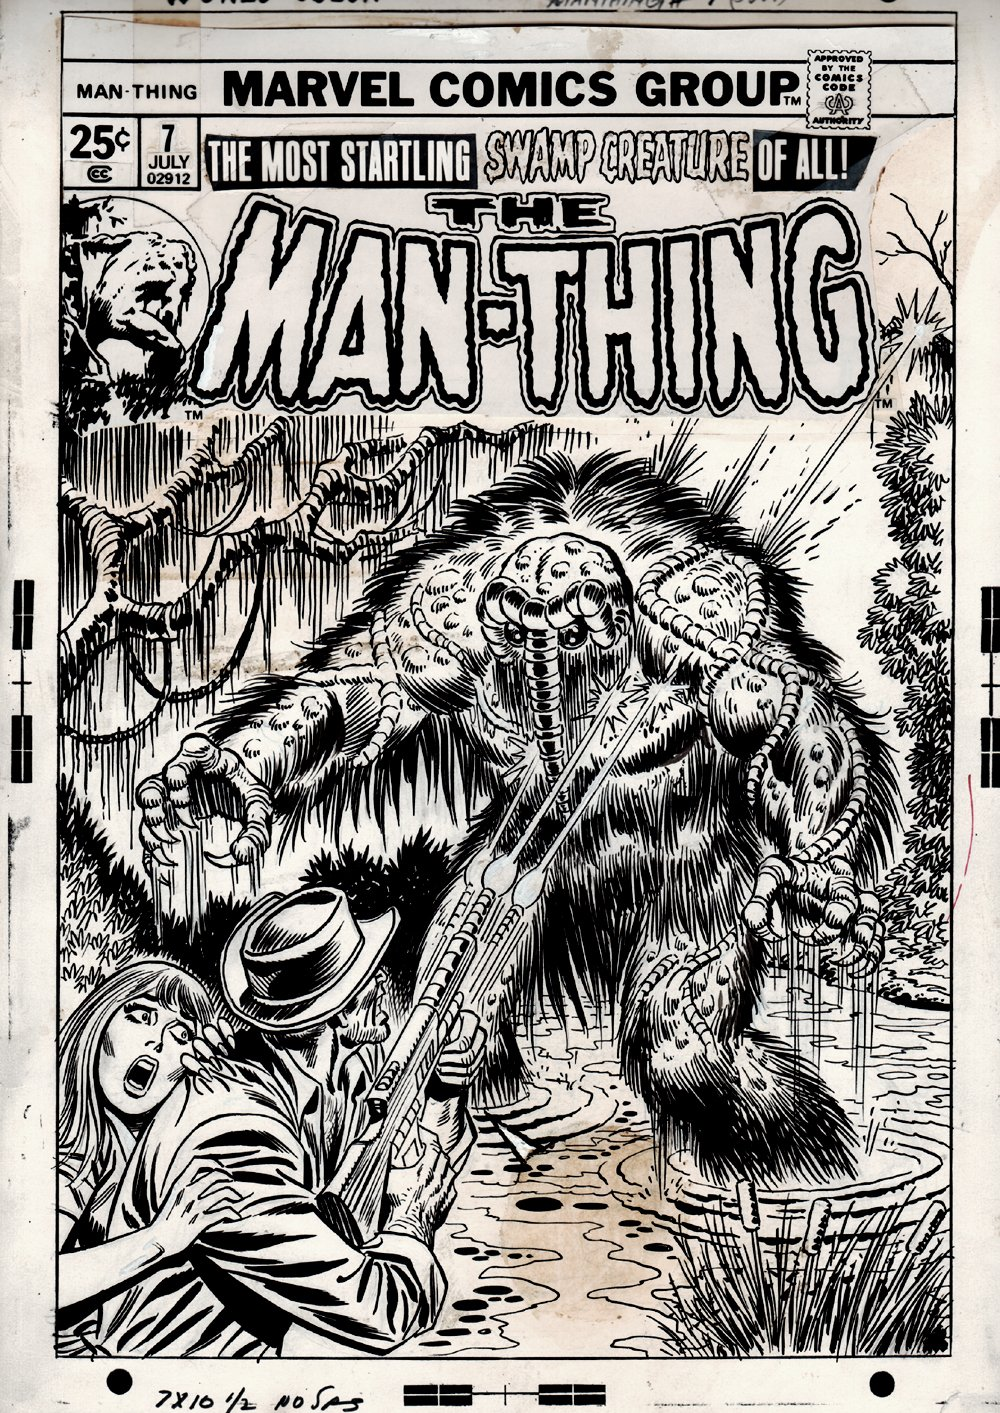 Man-Thing #7 Cover (1974)